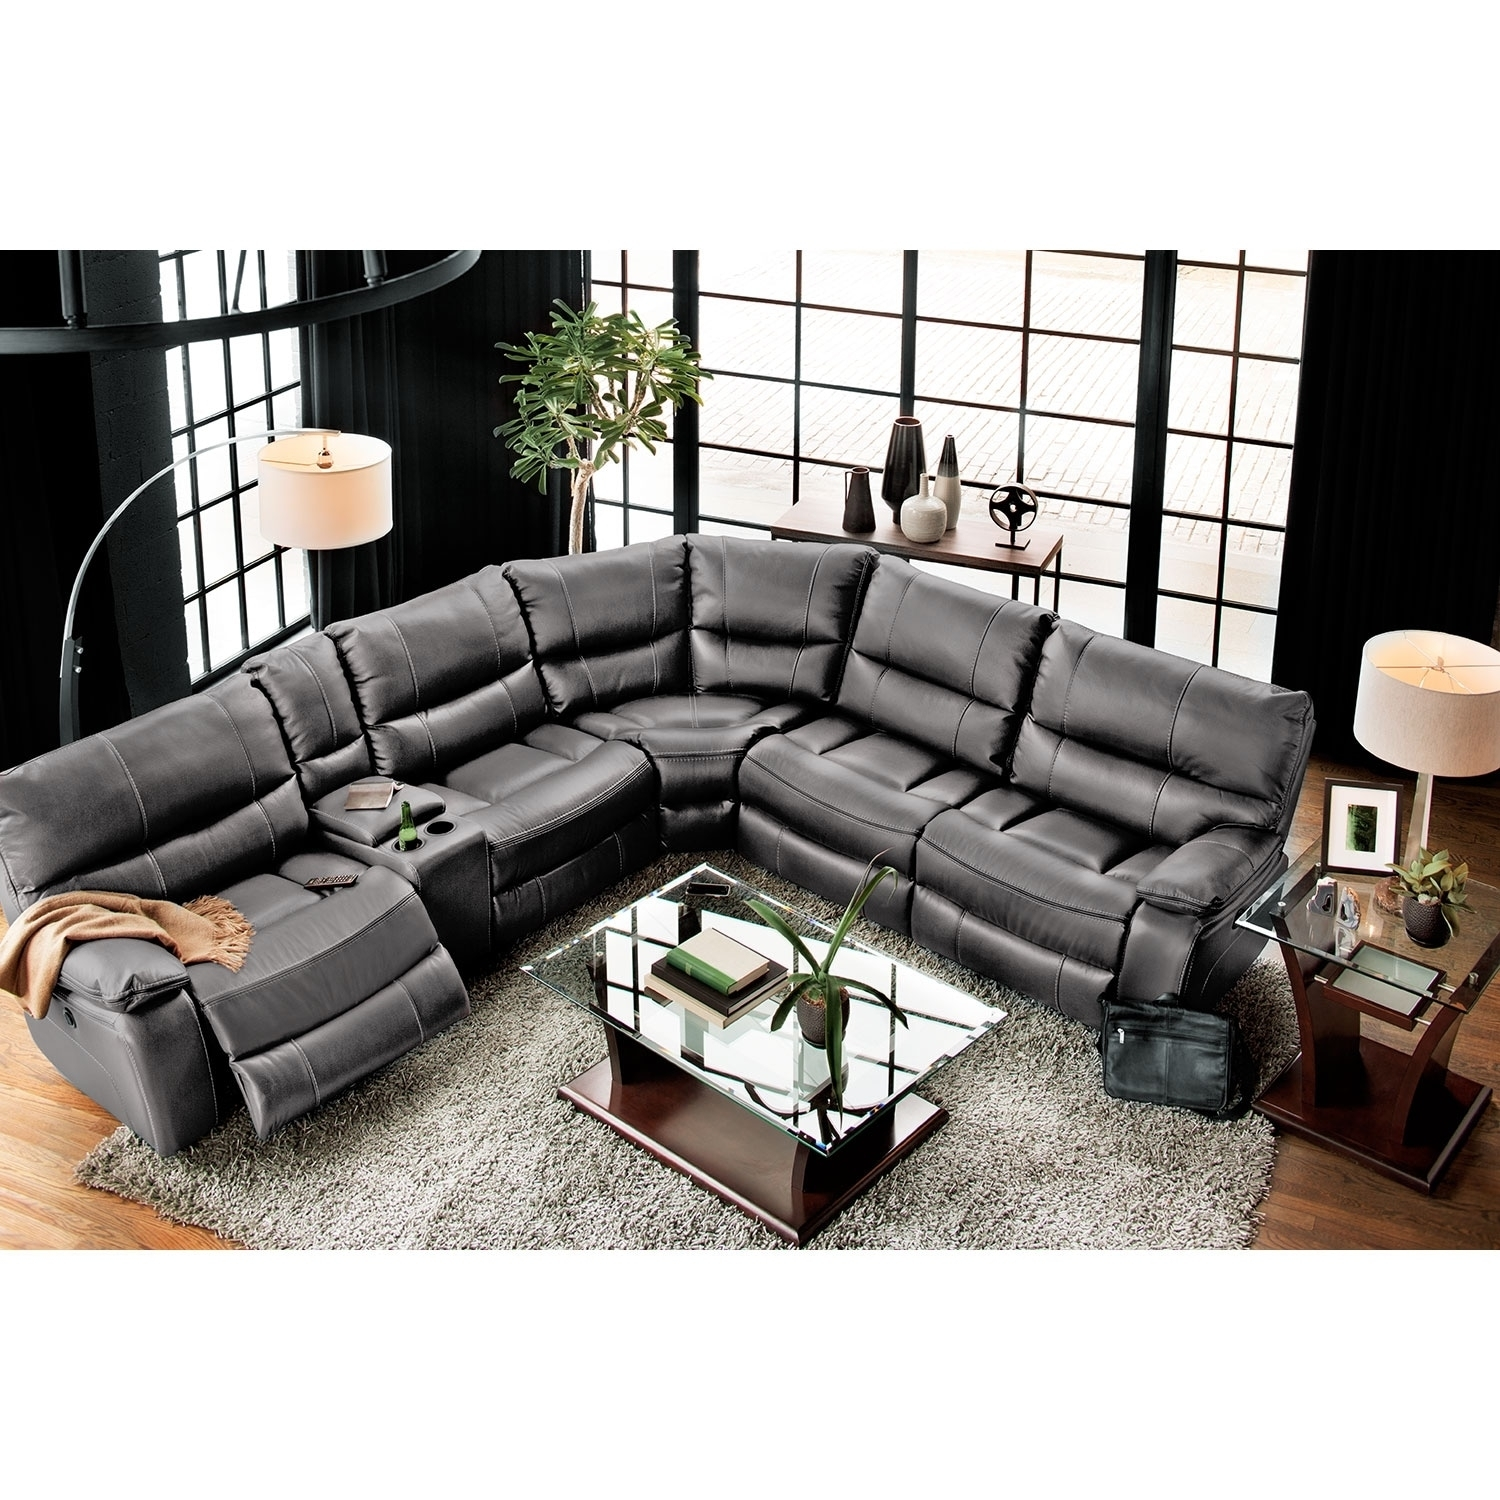 Orlando 6-Piece Power Reclining Sectional With 1 Stationary Chair inside Orlando Sectional Sofas (Image 6 of 10)